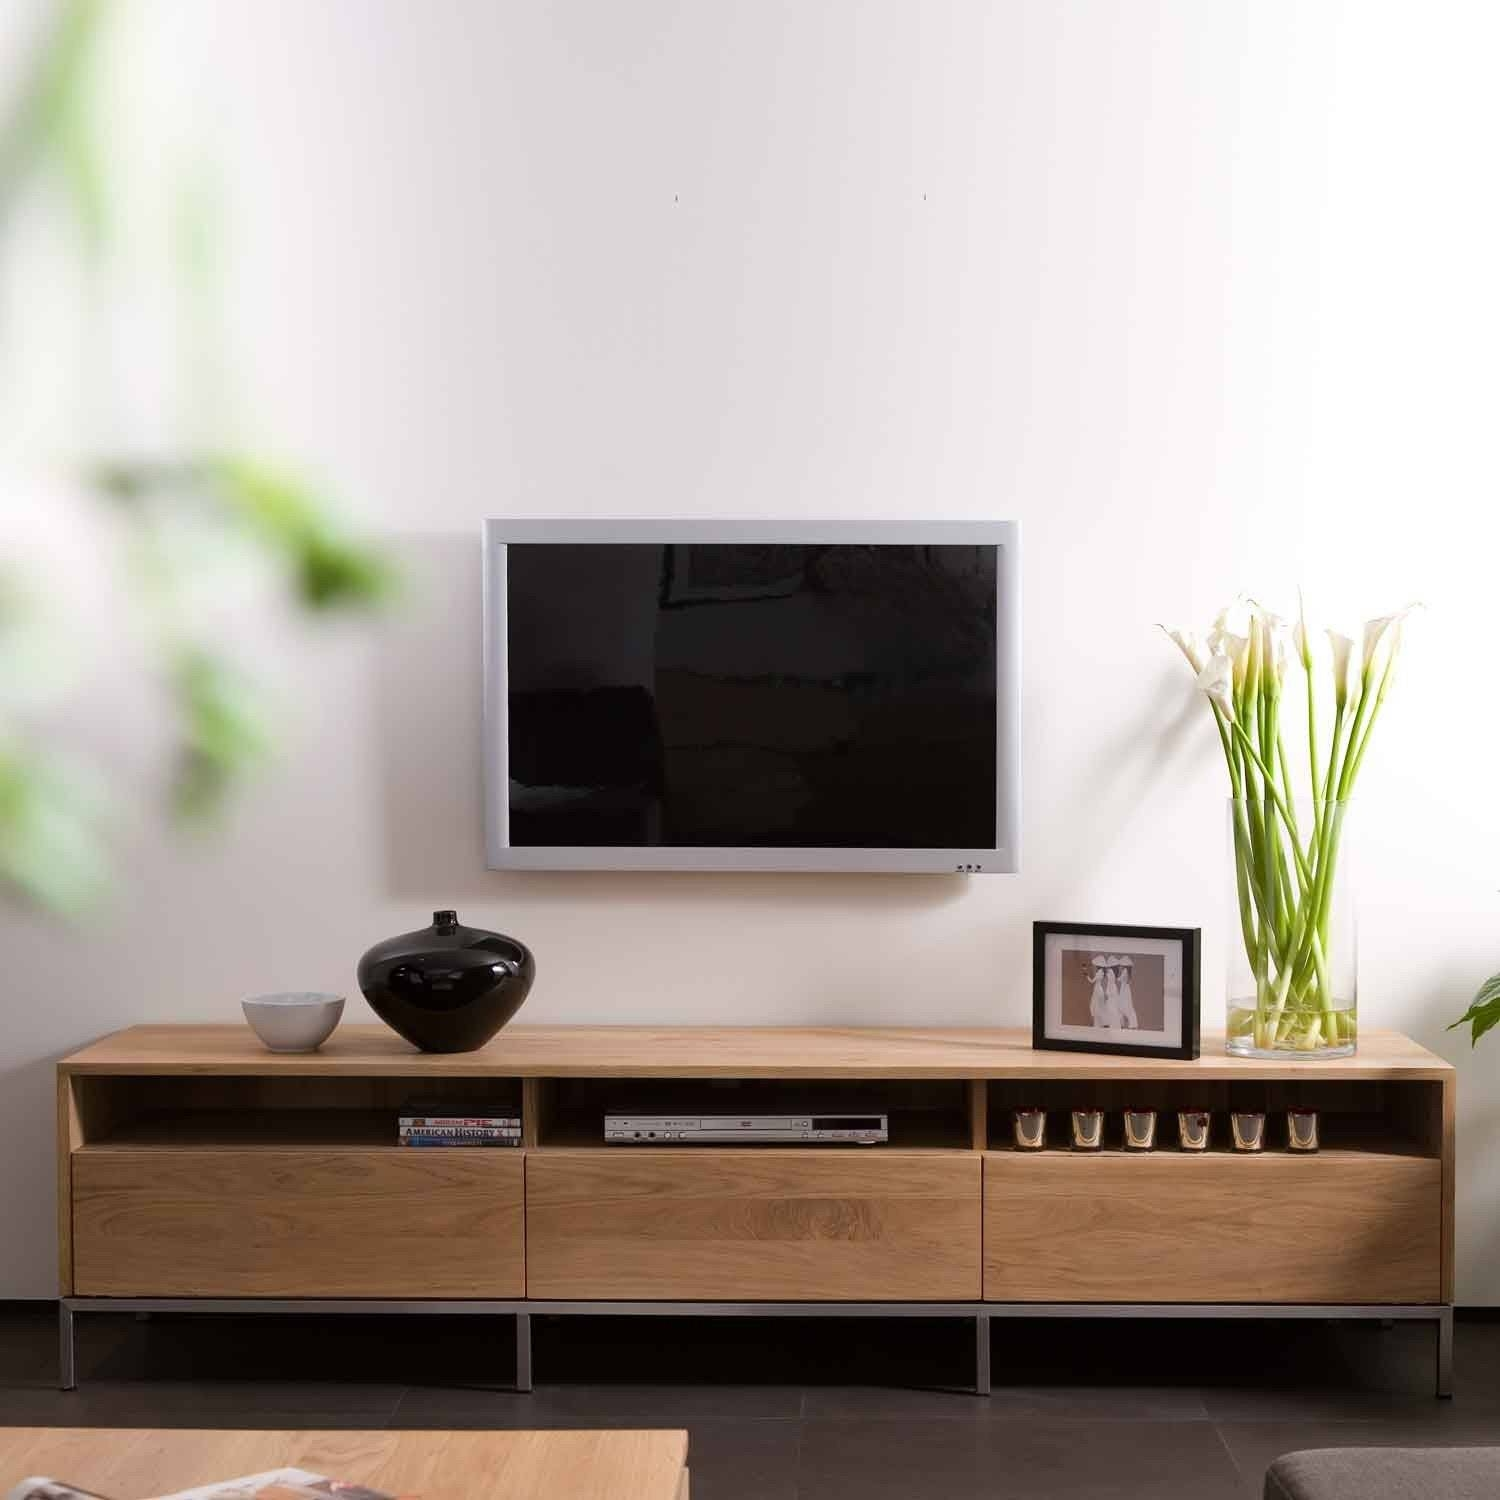 Showing Gallery Of Wooden Tv Stands And Cabinets View 10 Of 15  # Ethnicraft Meuble Tv